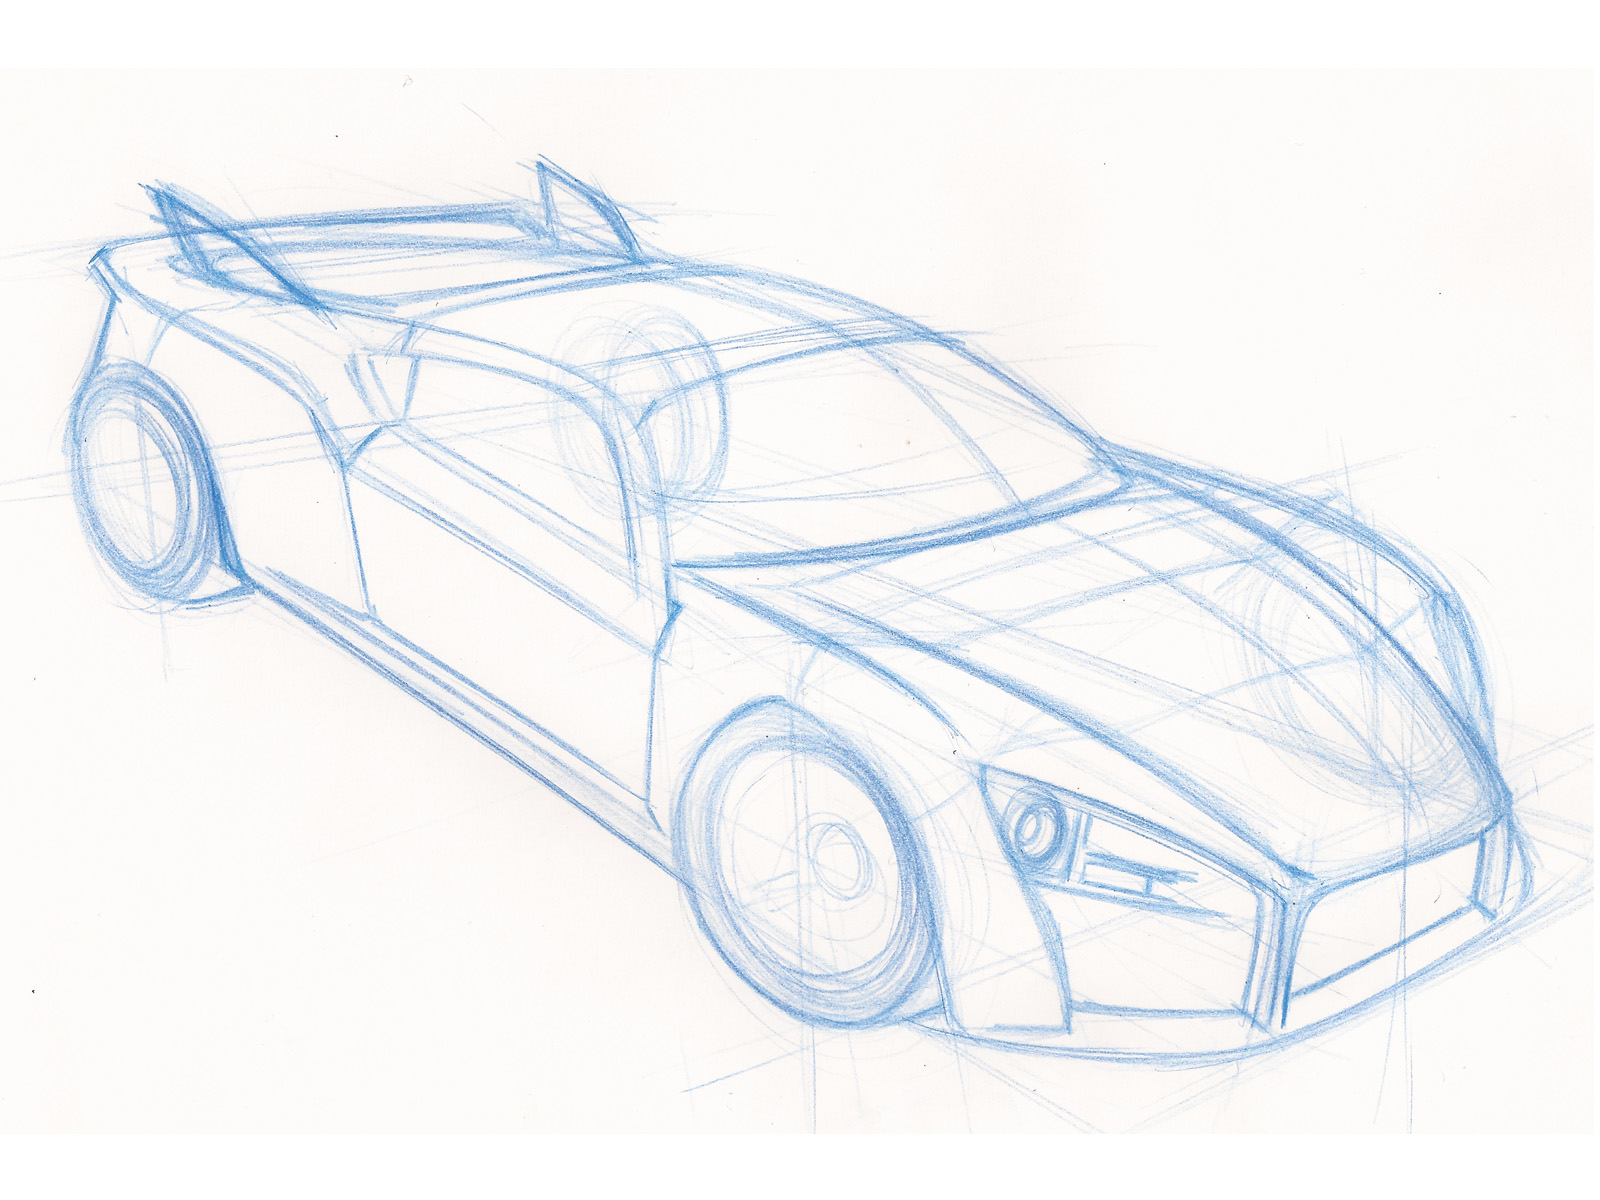 1600x1200 Cool Car Drawings In Pencil Wallpaper Iphone Camaro Side View